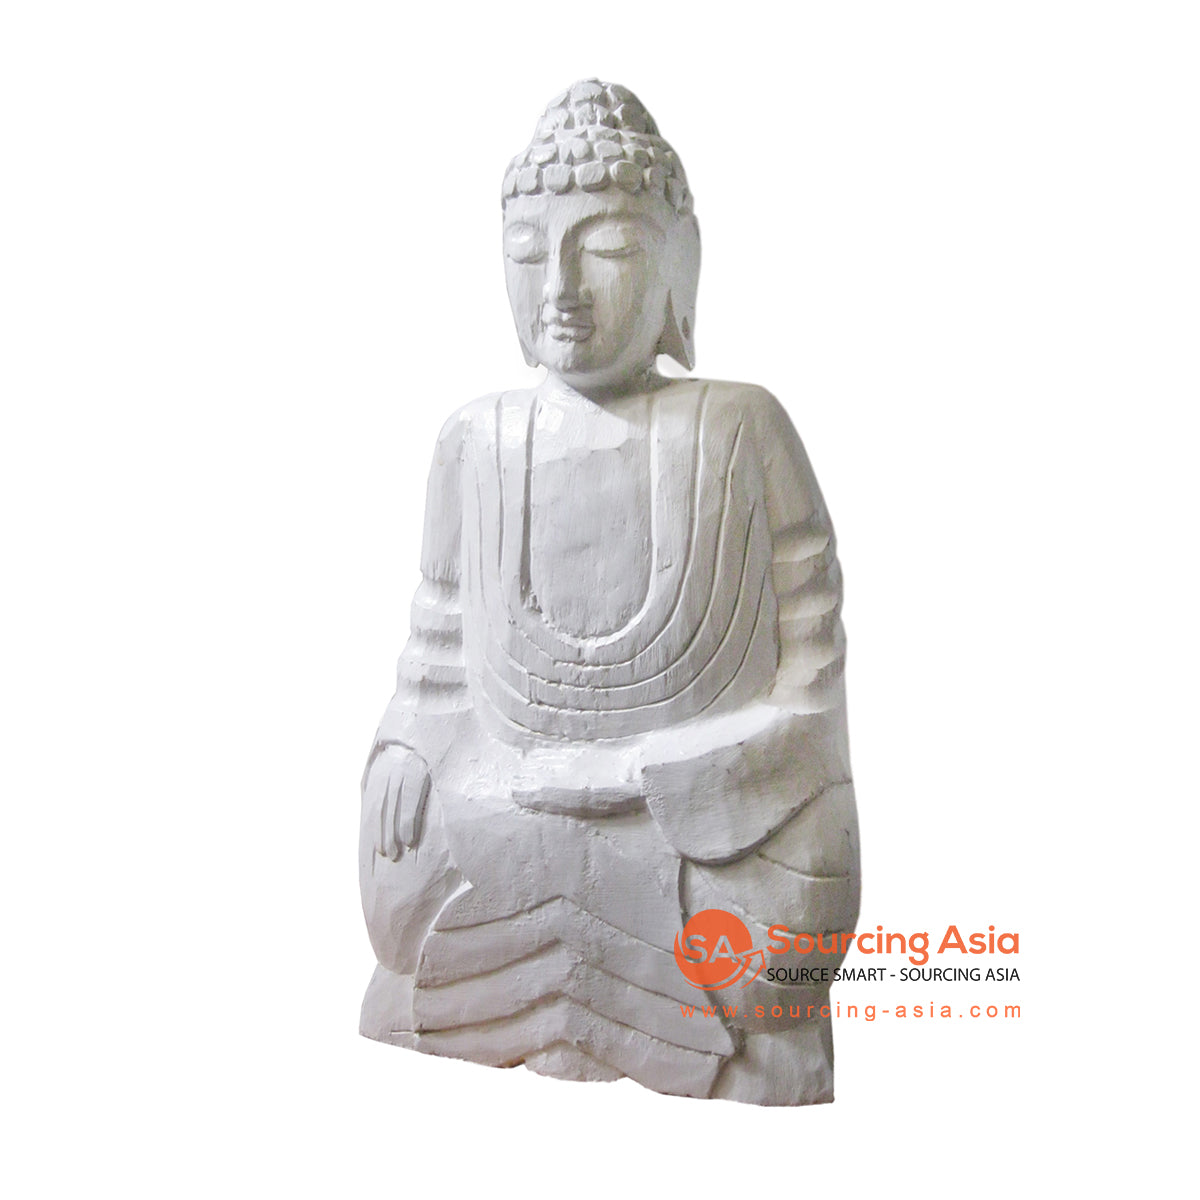 THE077-1 BUDDHA STATUE WHITE WASH